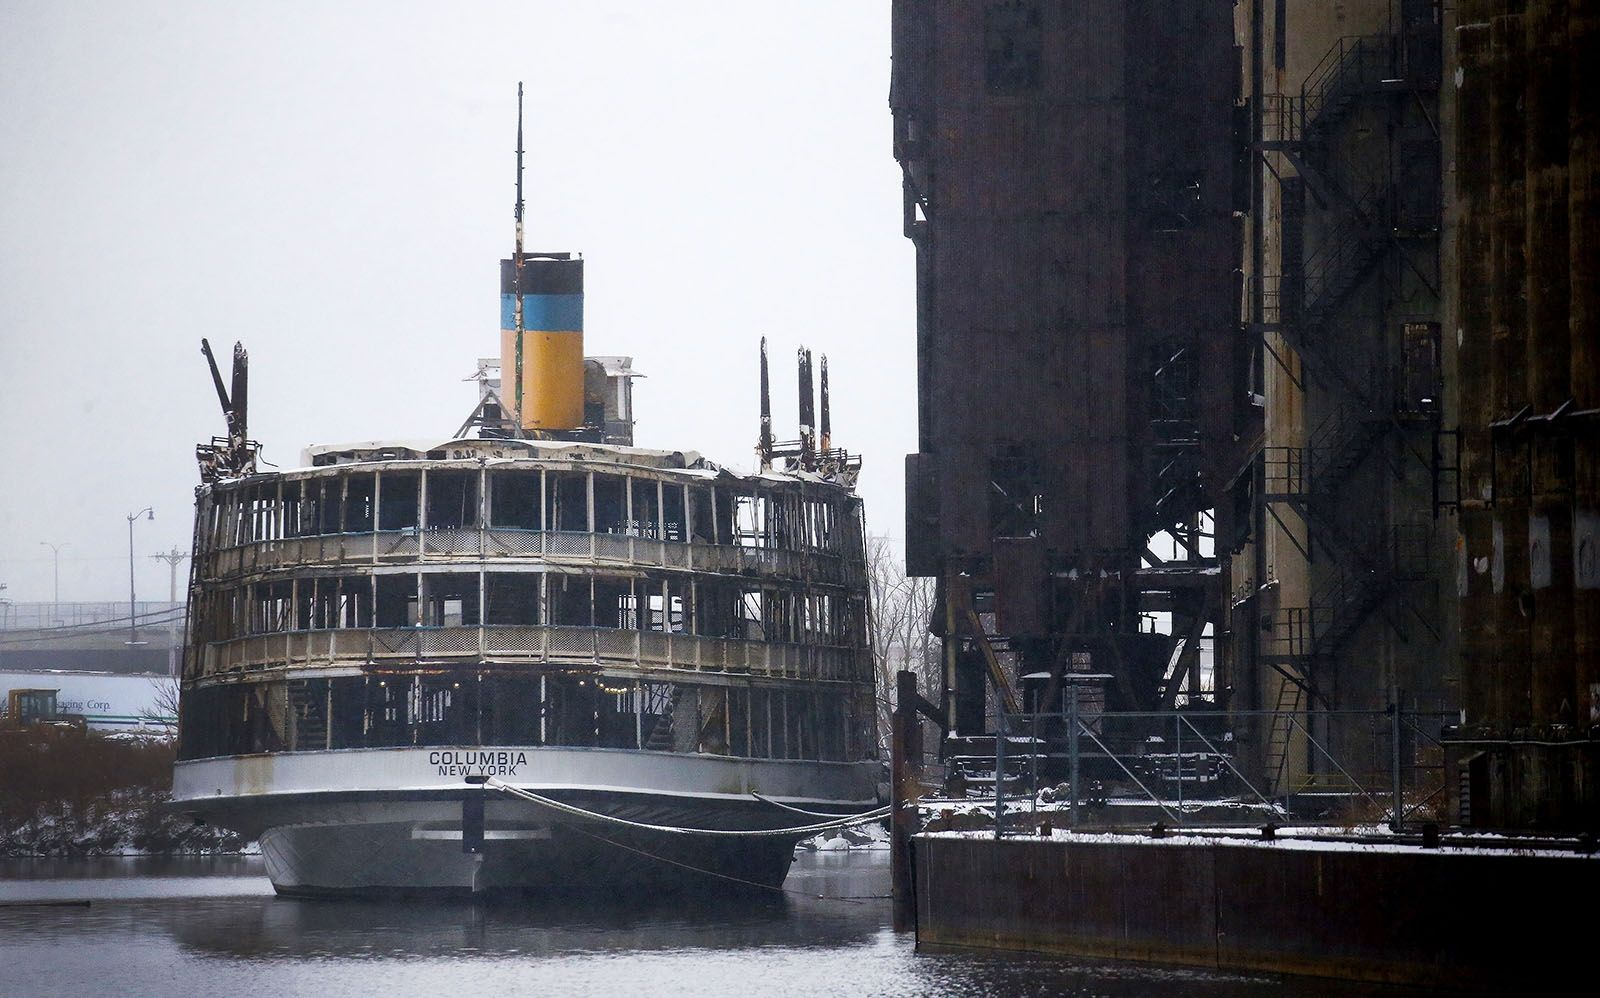 Day 364: Dec. 30, 2019 - The 115-year-old SS Columbia, a three-deck steamboat, transported passengers a quarter-century ago between Detroit and an amusement park in Canada, sits docked on the Buffalo River.